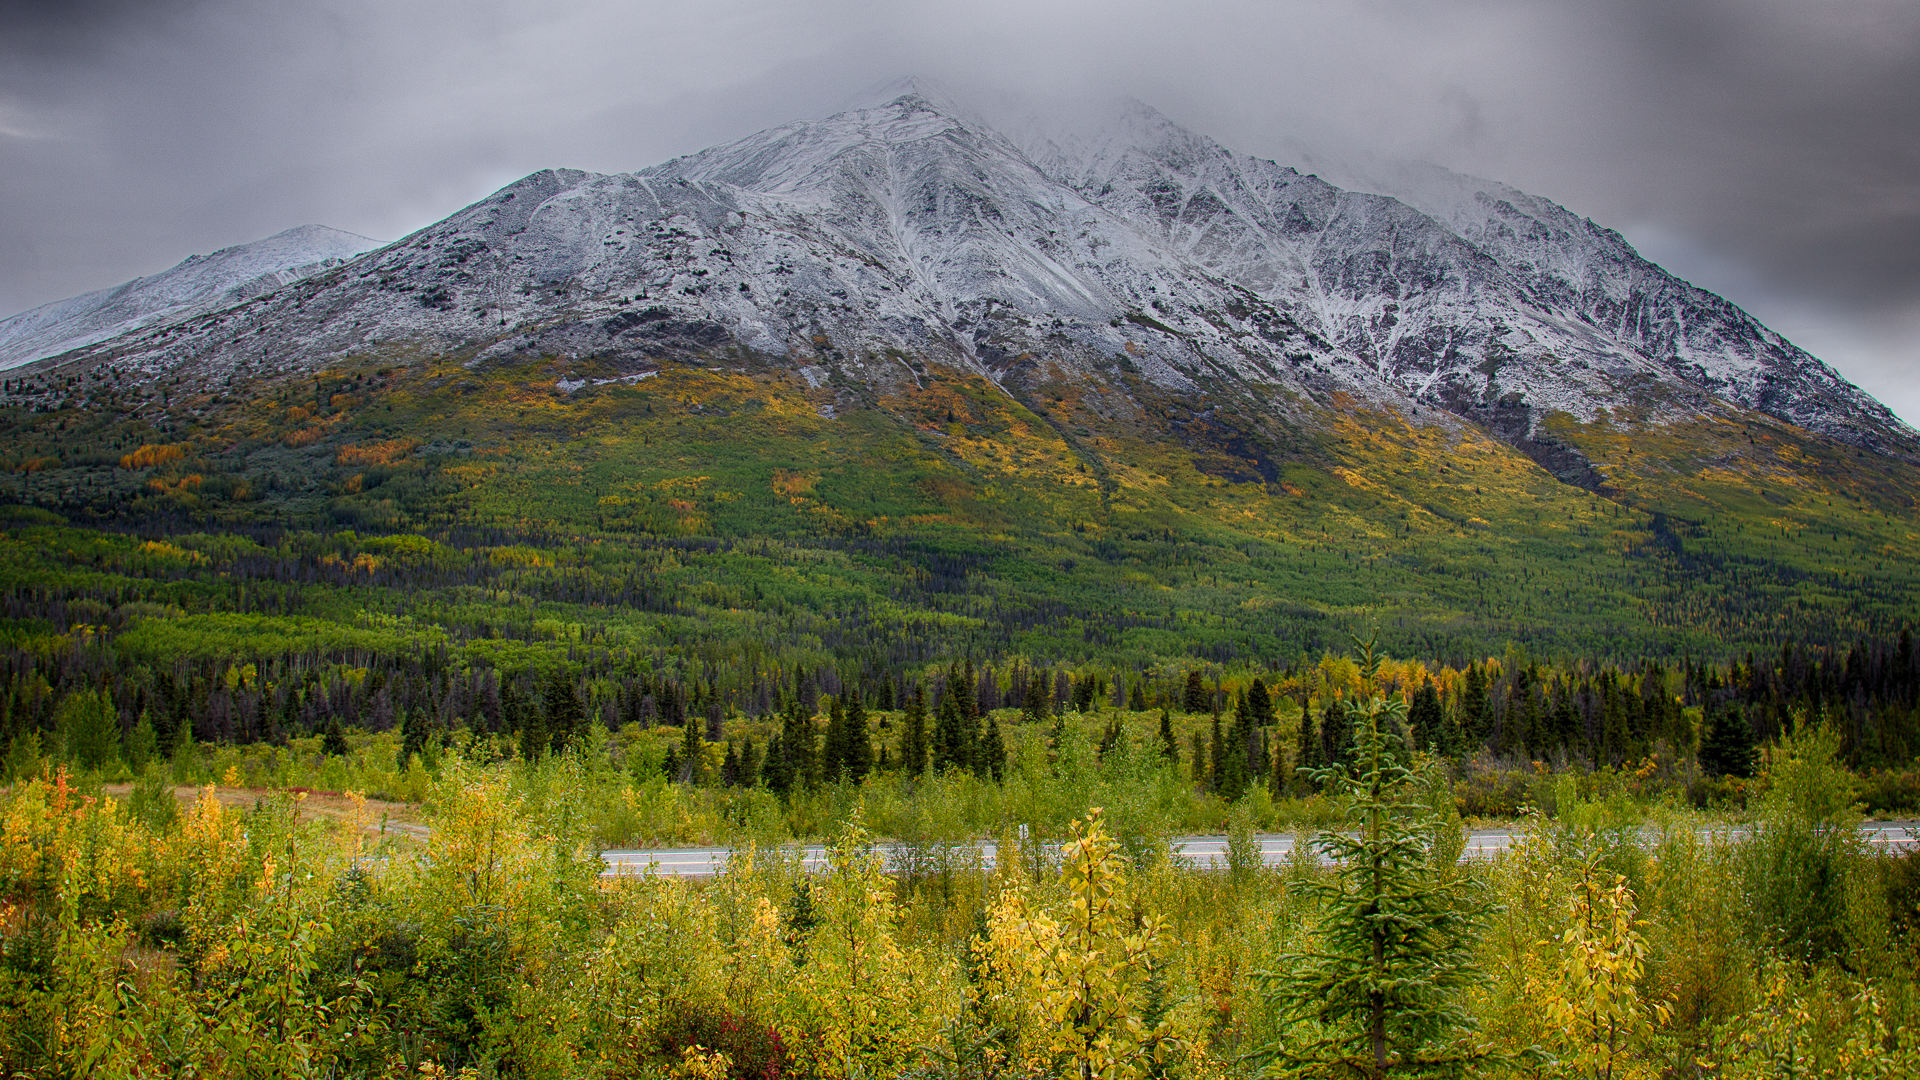 Some of the amazing fall scenery.